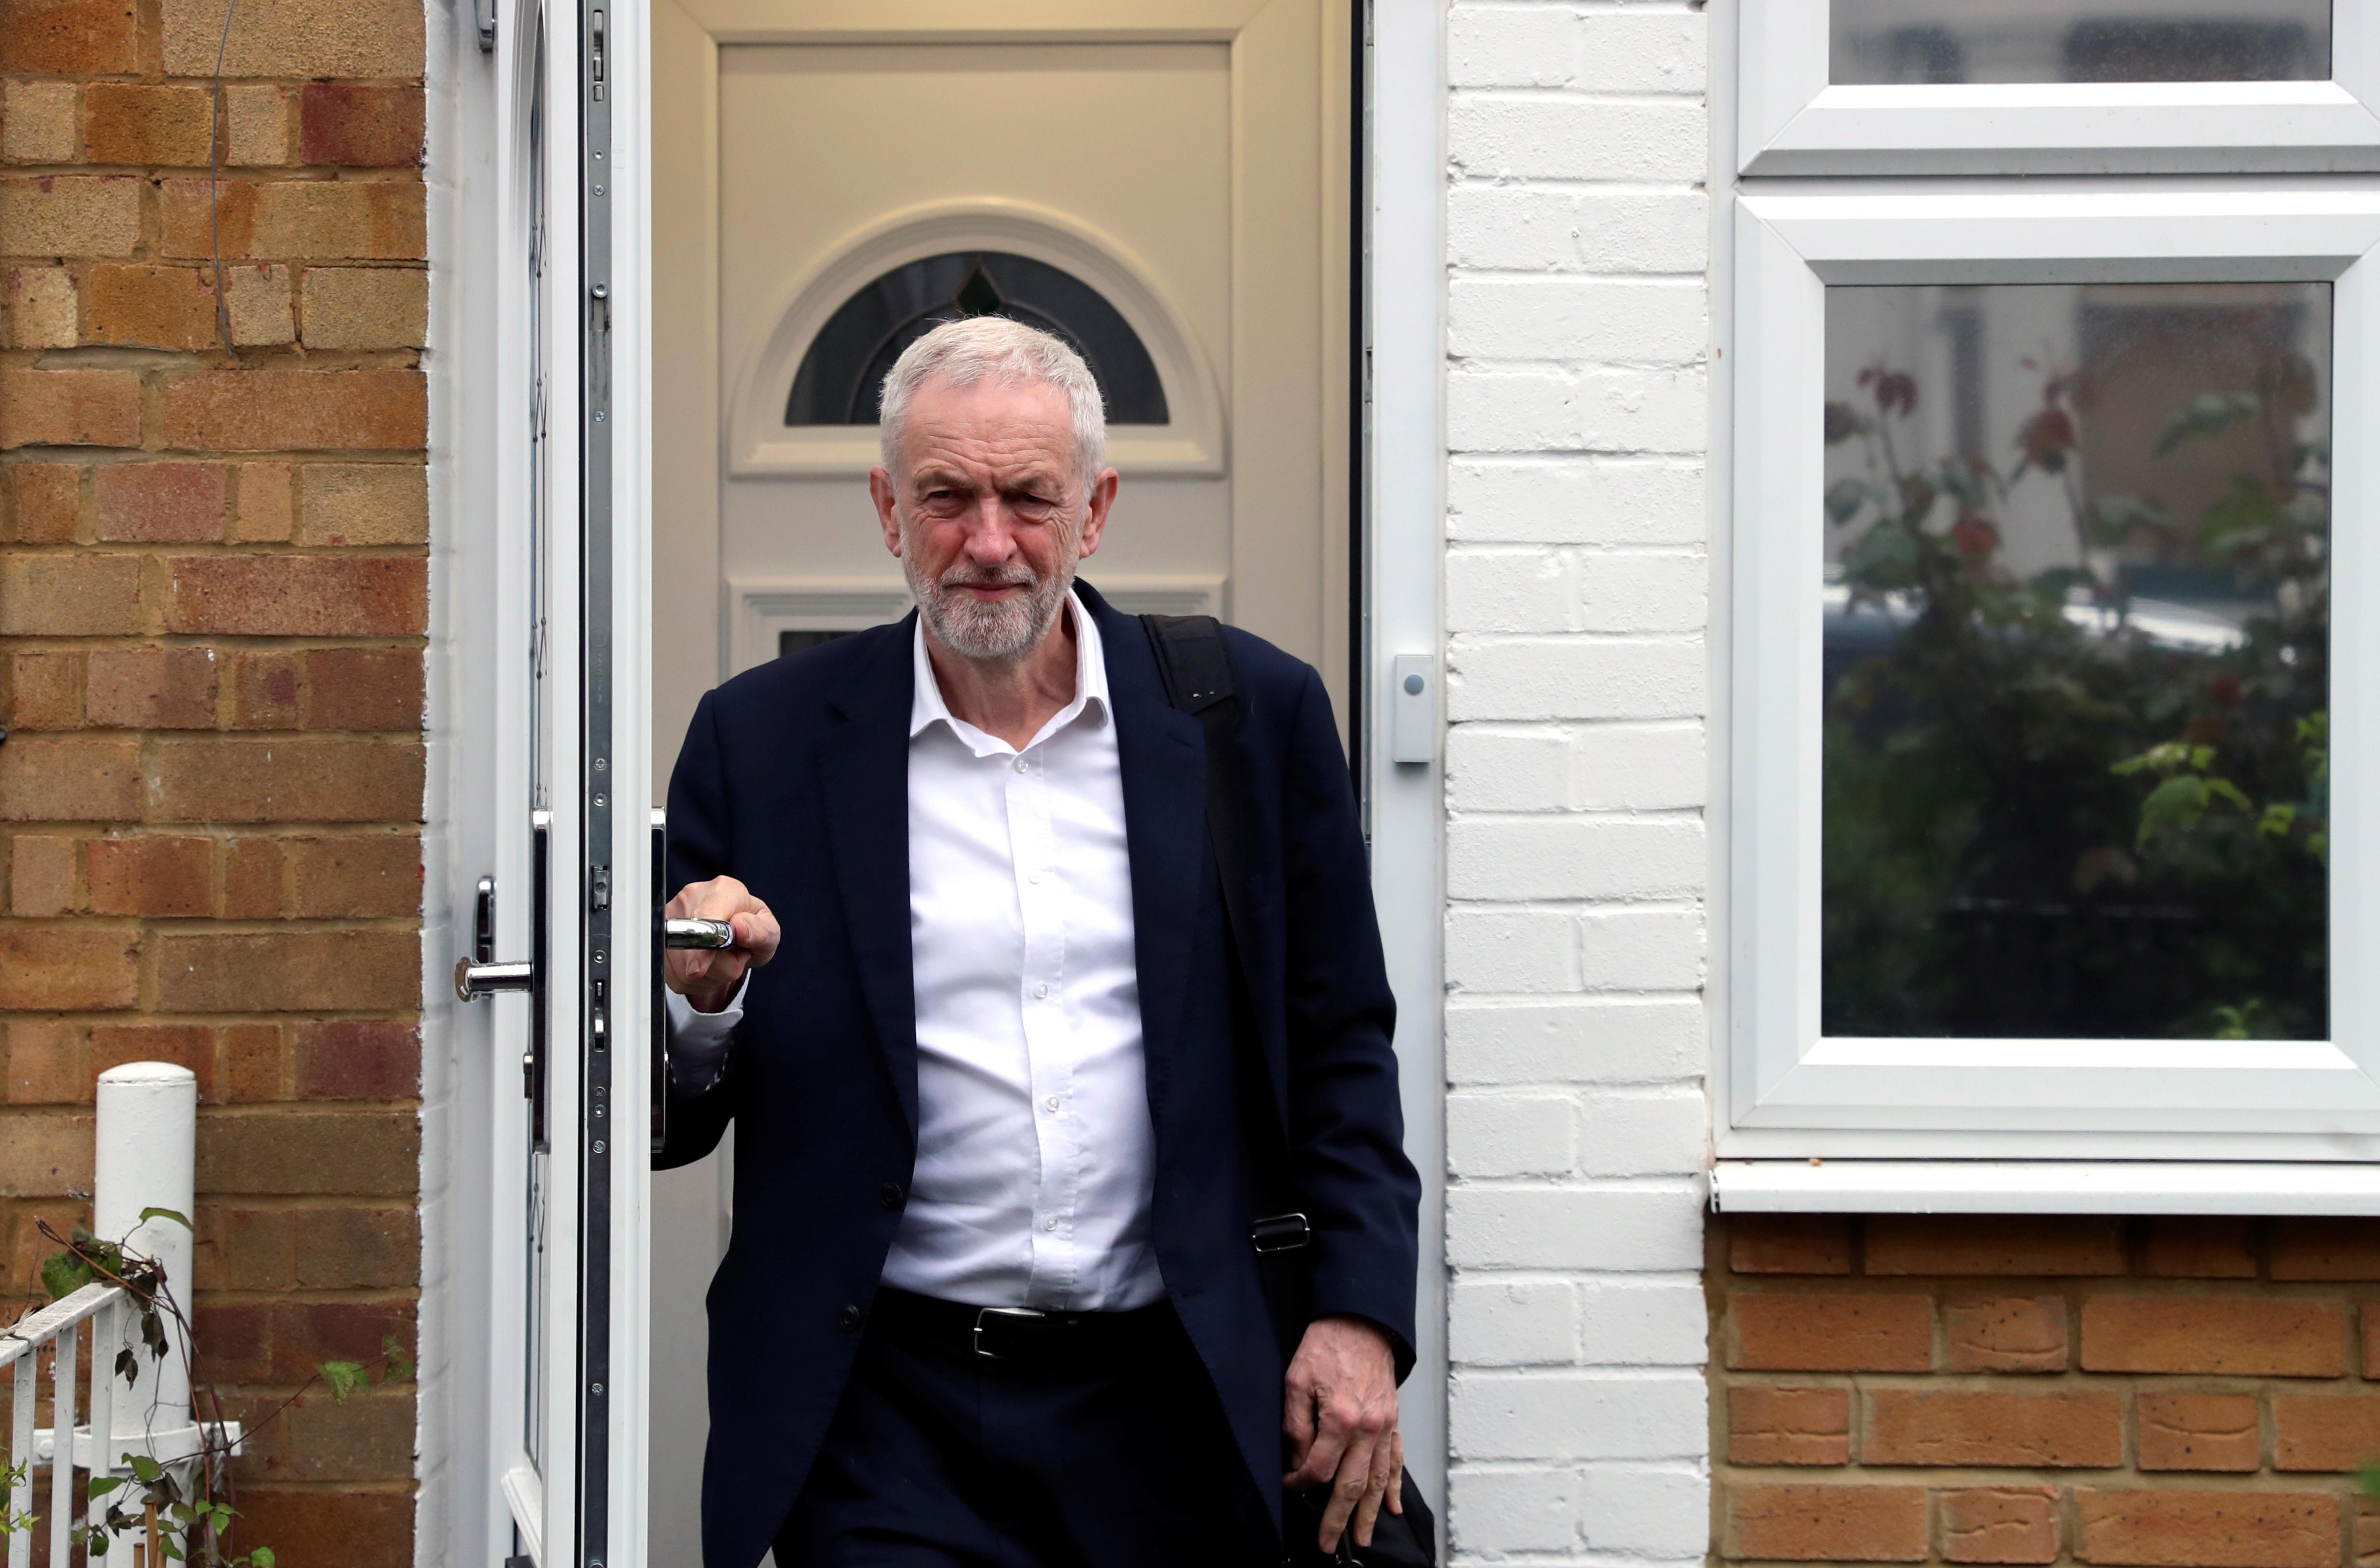 Labour Party to discuss Brexit tactics with rival parties